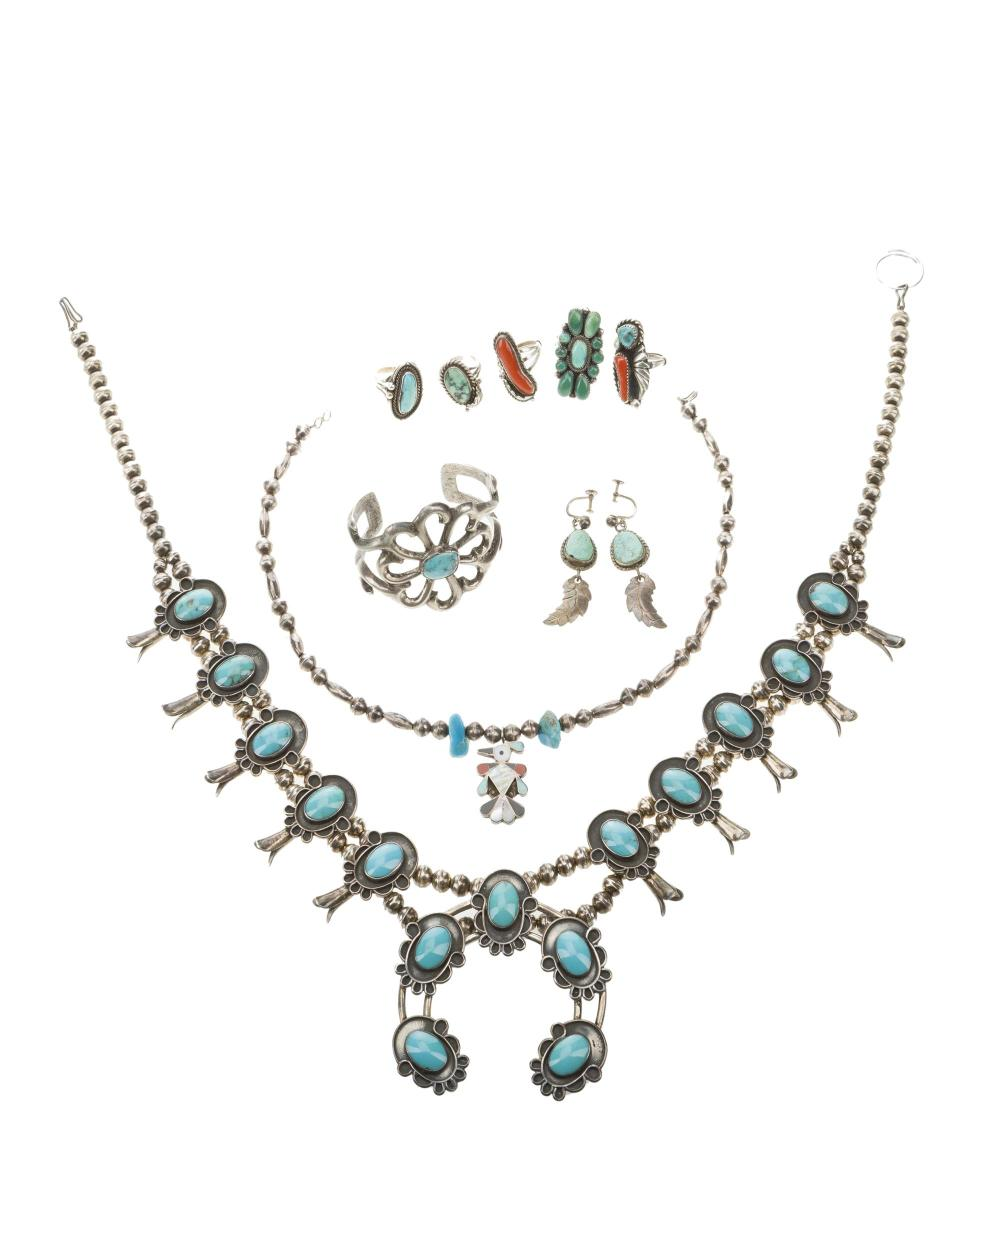 A group of American Indian jewelry